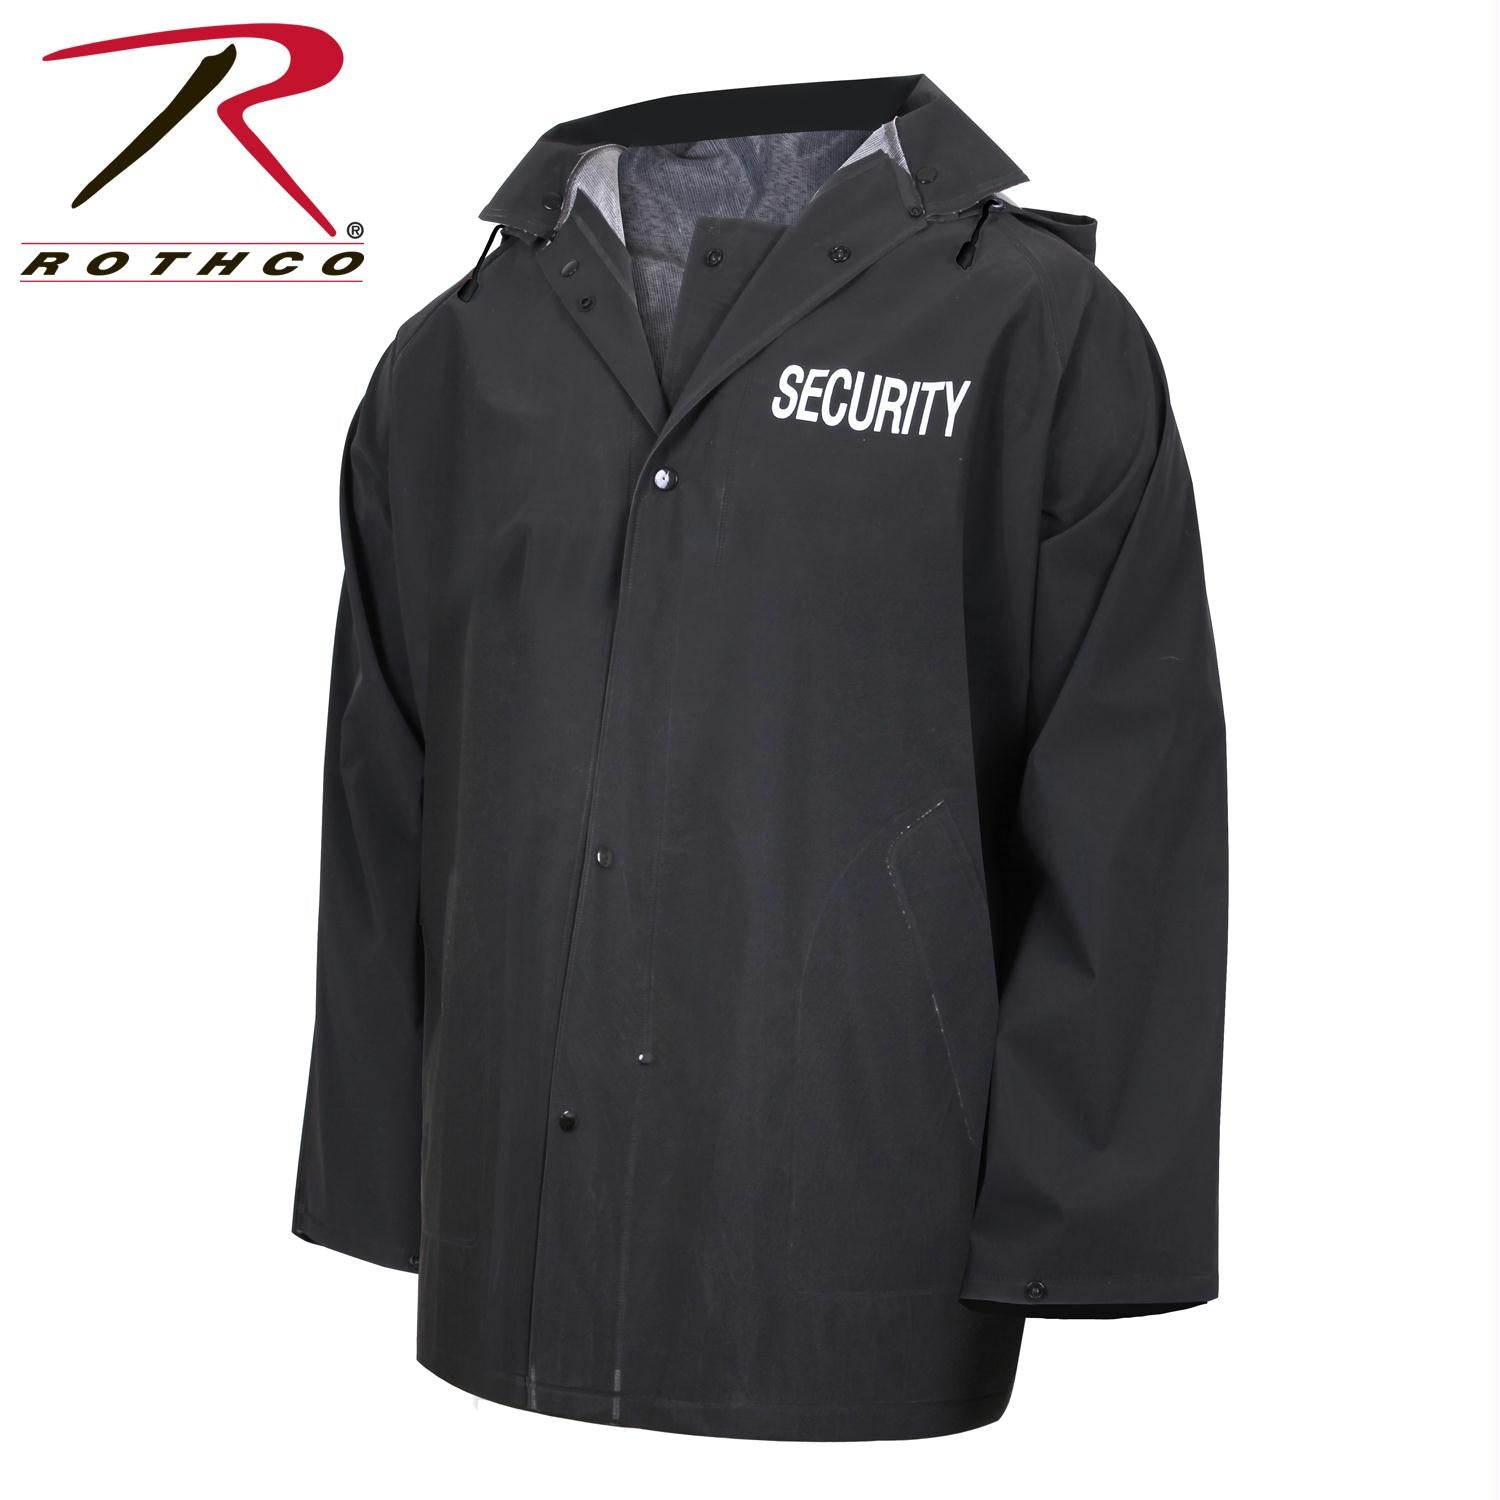 Rothco Security Rain Jacket - 2XL